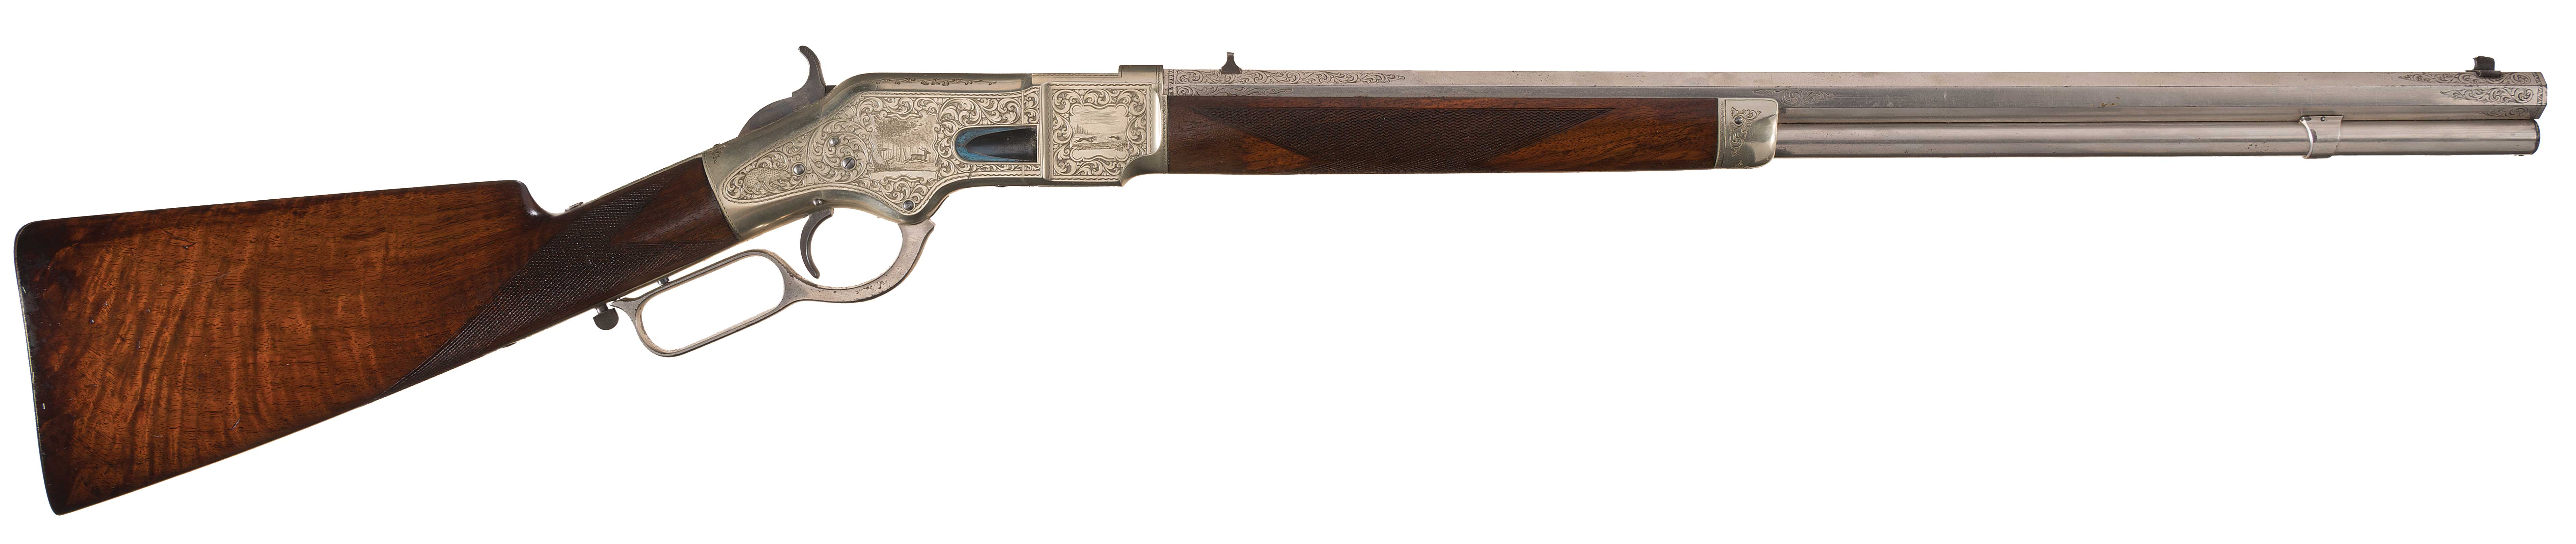 This is a high resolution image of the right side of this 1866 Winchester rifle.